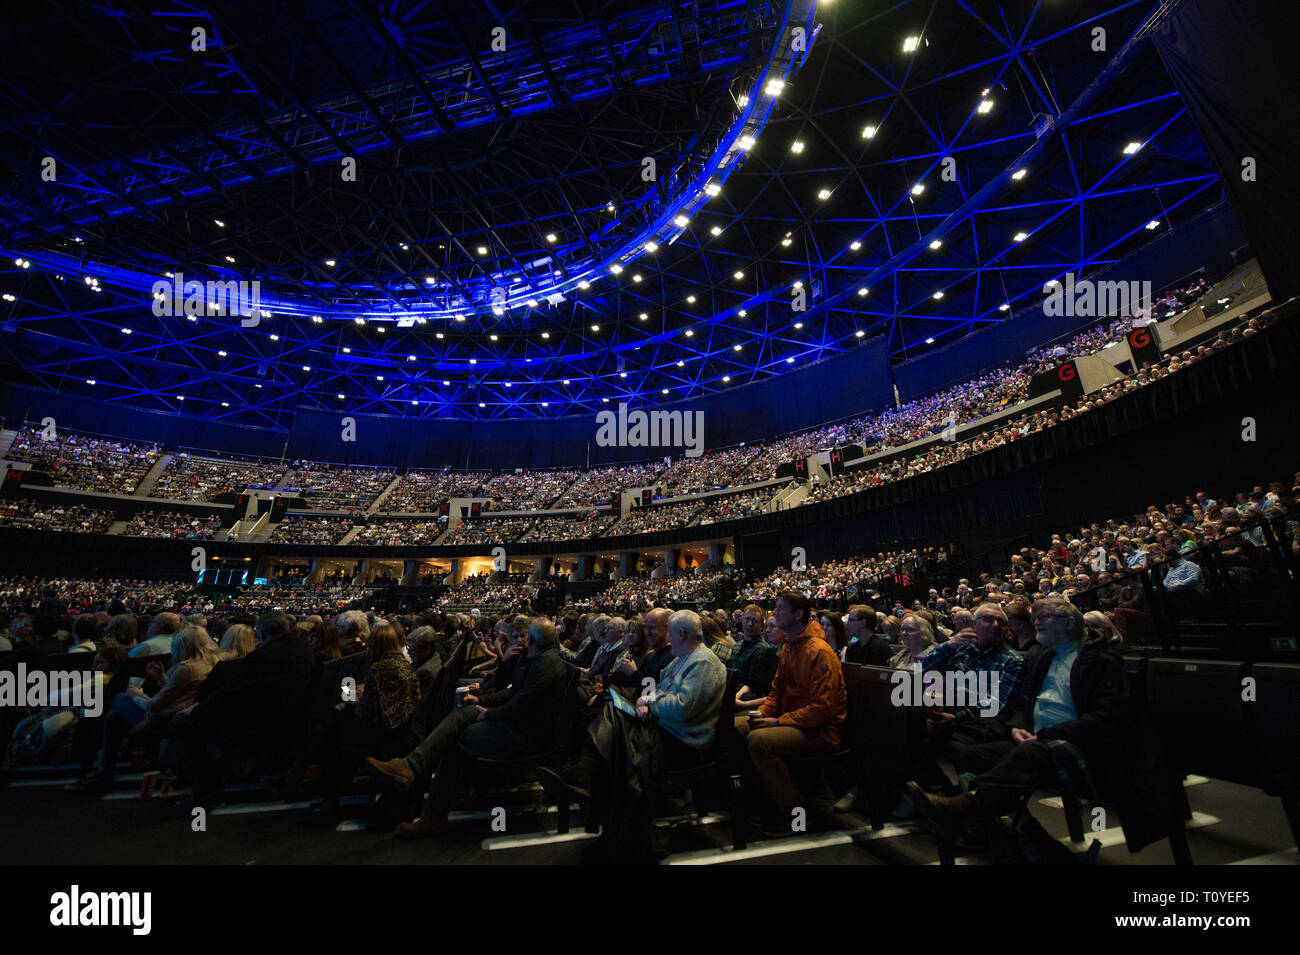 Glasgow, UK. 21 March 2019.  BBC's Blue Planet II Live In Concert.  Narrated by Anita Rani The concert will be hosted by BBC presenter Anita Rani, a highly-respected TV personality, she appears on stage in between film scores and gives short descriptions and insights into the next piece of film along with facts about the animals about to be seen.    The live orchestra perform powerful music pieces which fit perfectly to fantastic film footage of chase scenes and close ups on a massive high definition projection. Credit: Colin Fisher/Alamy Live News - Stock Image